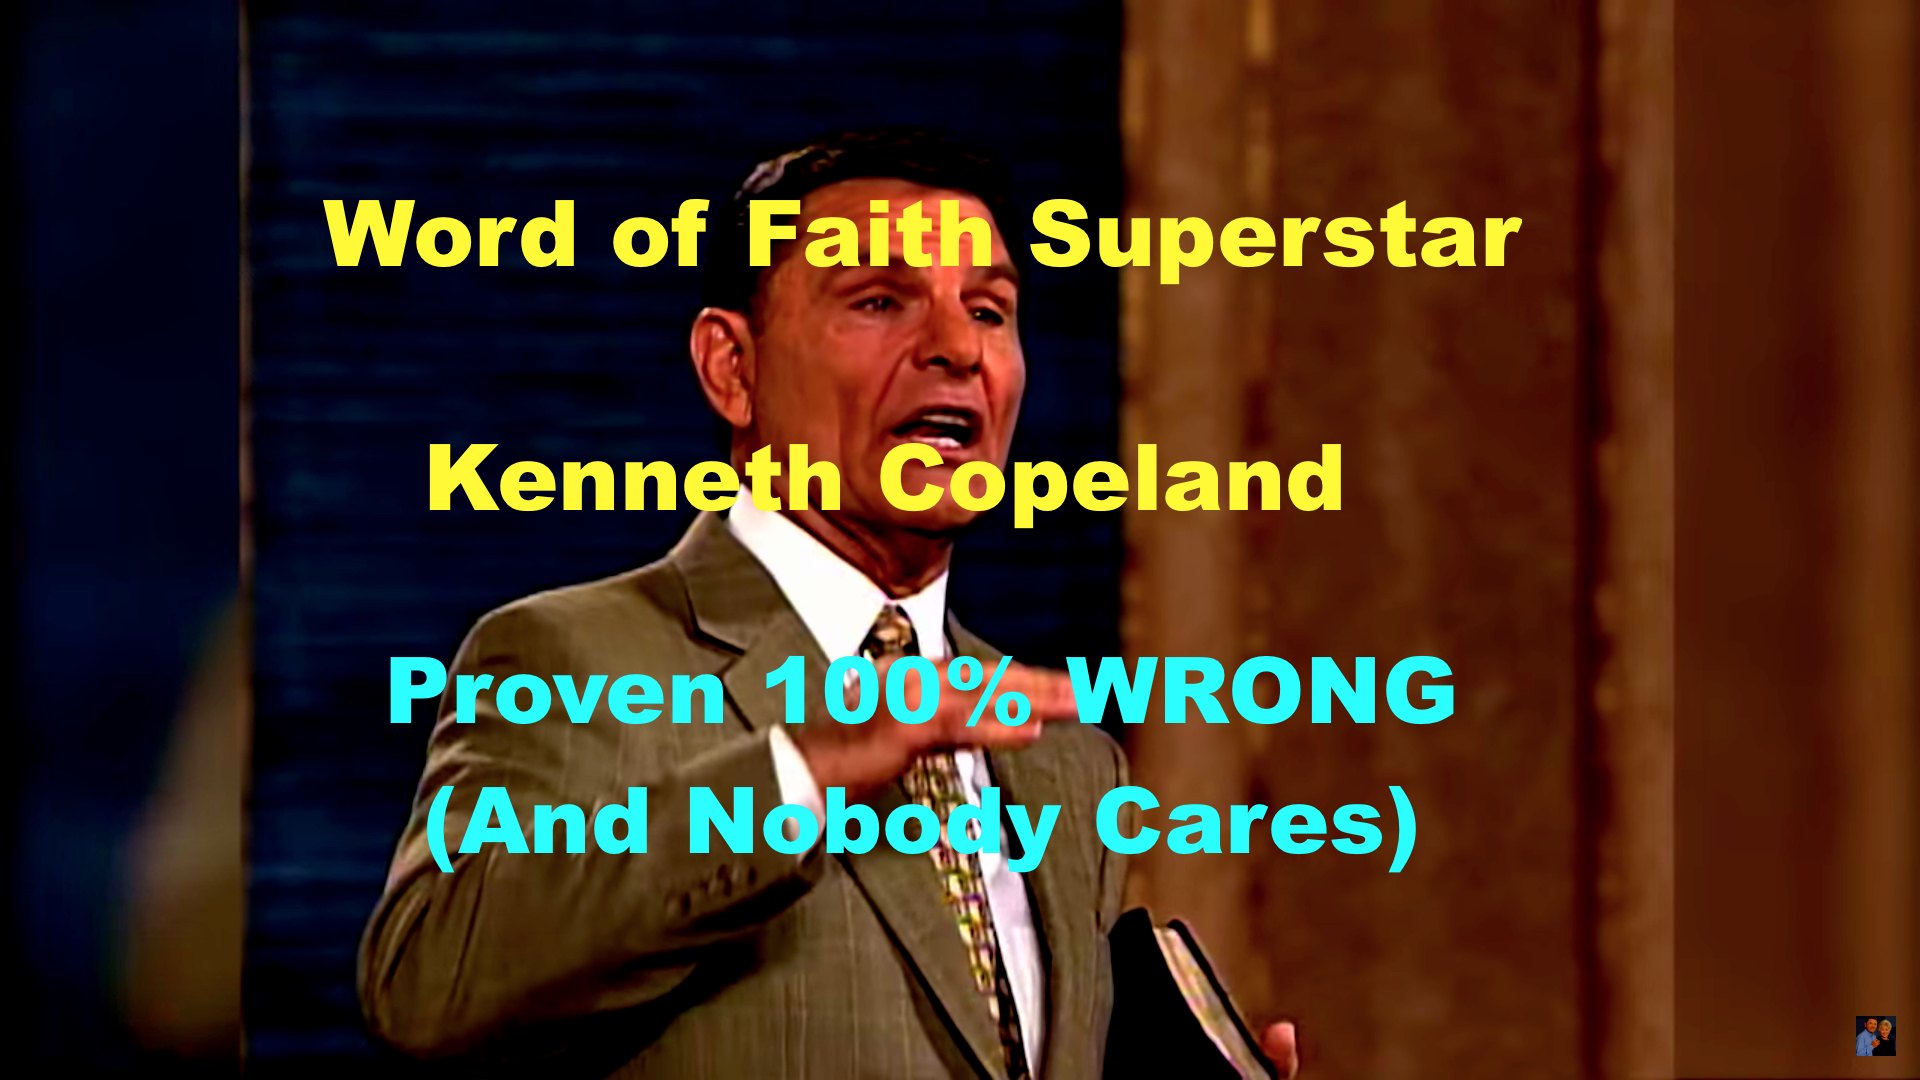 Word of Faith Superstar Kenneth Copeland Proven 100% WRONG